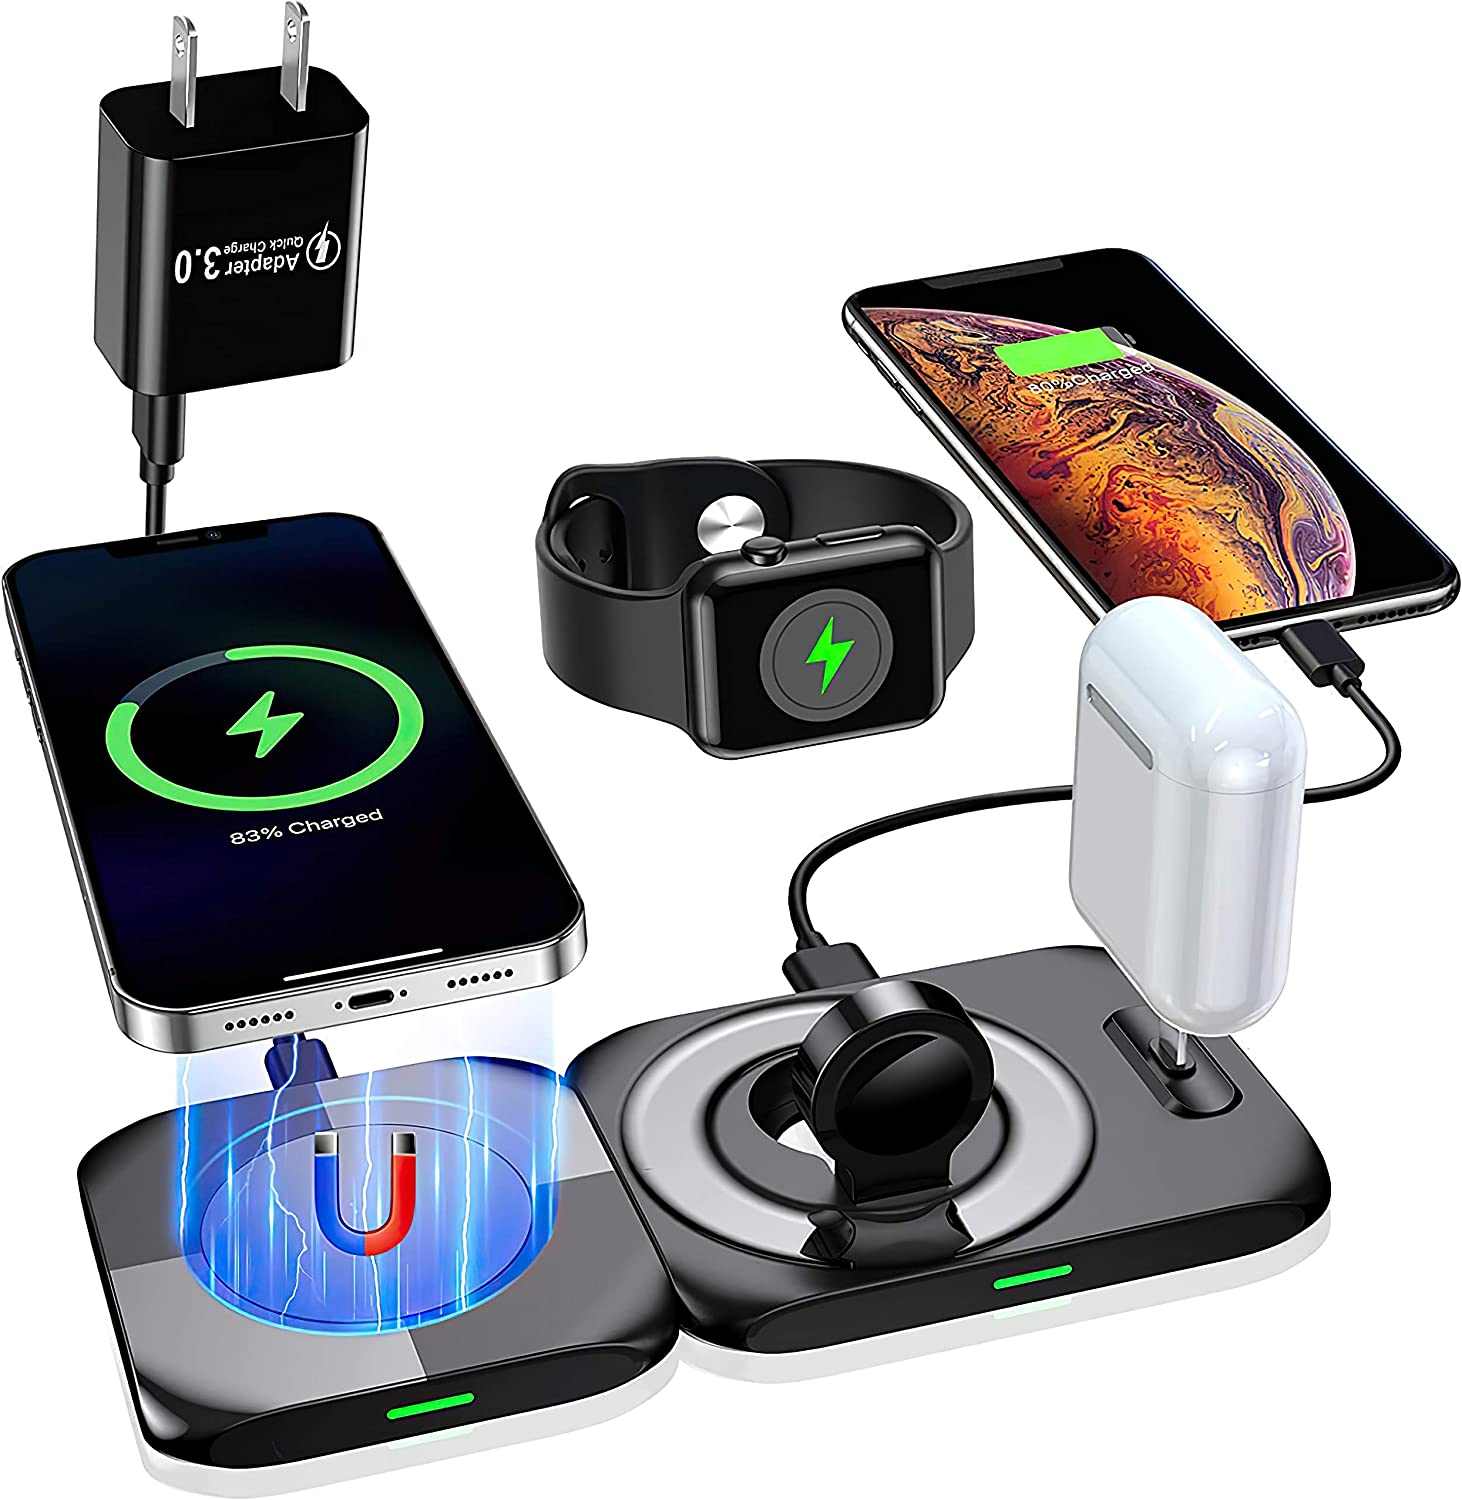 Five Frest 4-in-1 Wireless Charging Station for Apple Products - Wireless Charger Station for Apple Devices - Charging Dock for iPhone 12/ Pro/Pro Max/Mini 11 X/Xs/Xr Apple Watch Airpods Pro/Airpod